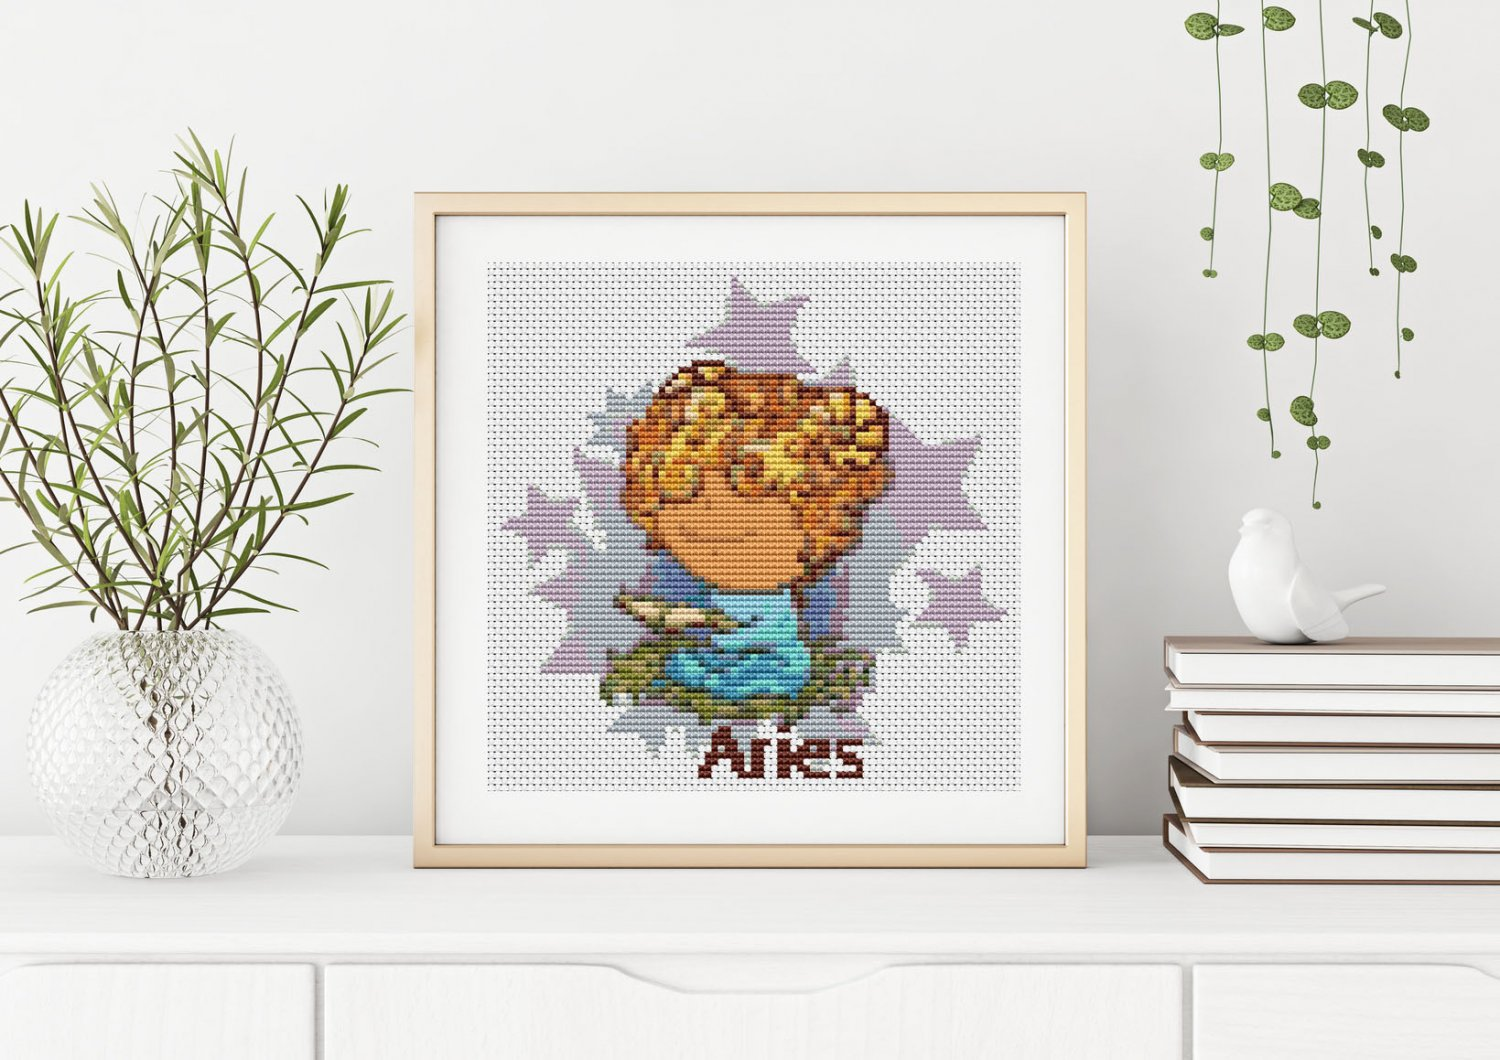 Aries Cross Stitch Chart